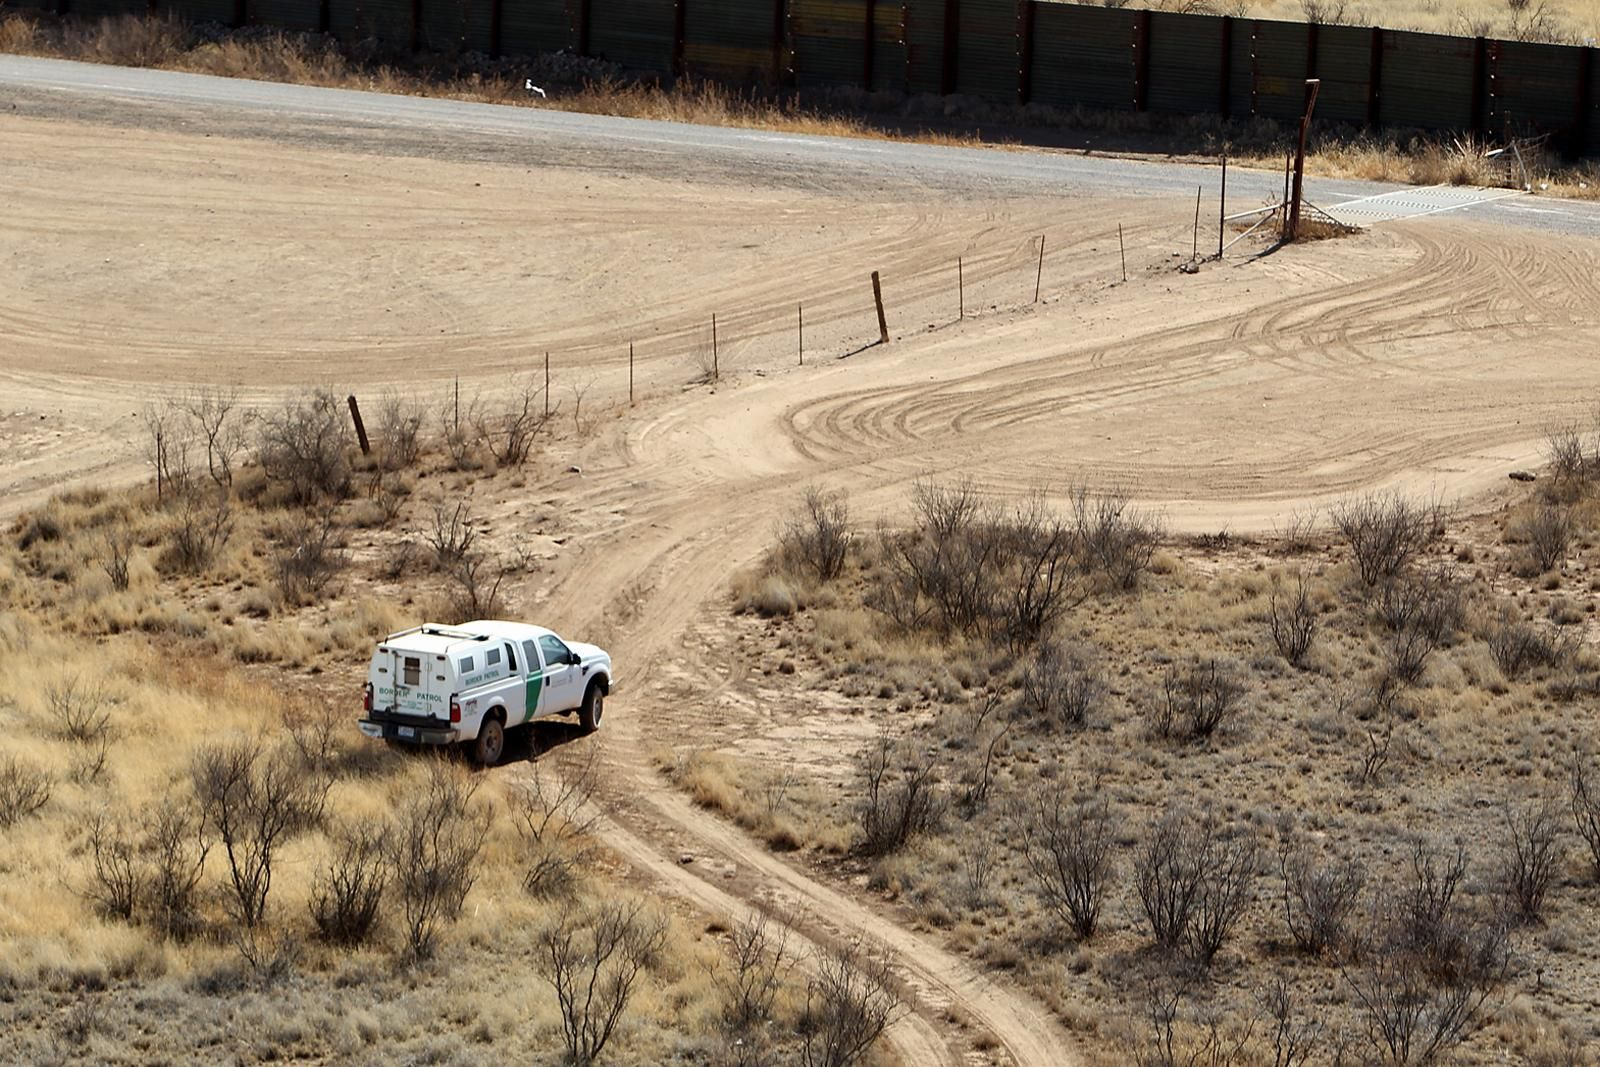 FILE: In this Jan 25, 2011 photo U.S. Customs and Border Protection agents monitor a section of fencing in Arizona near the Mexico border. (Photo, CBP/Donna BurtonATSCC Arizona CBP Operations)